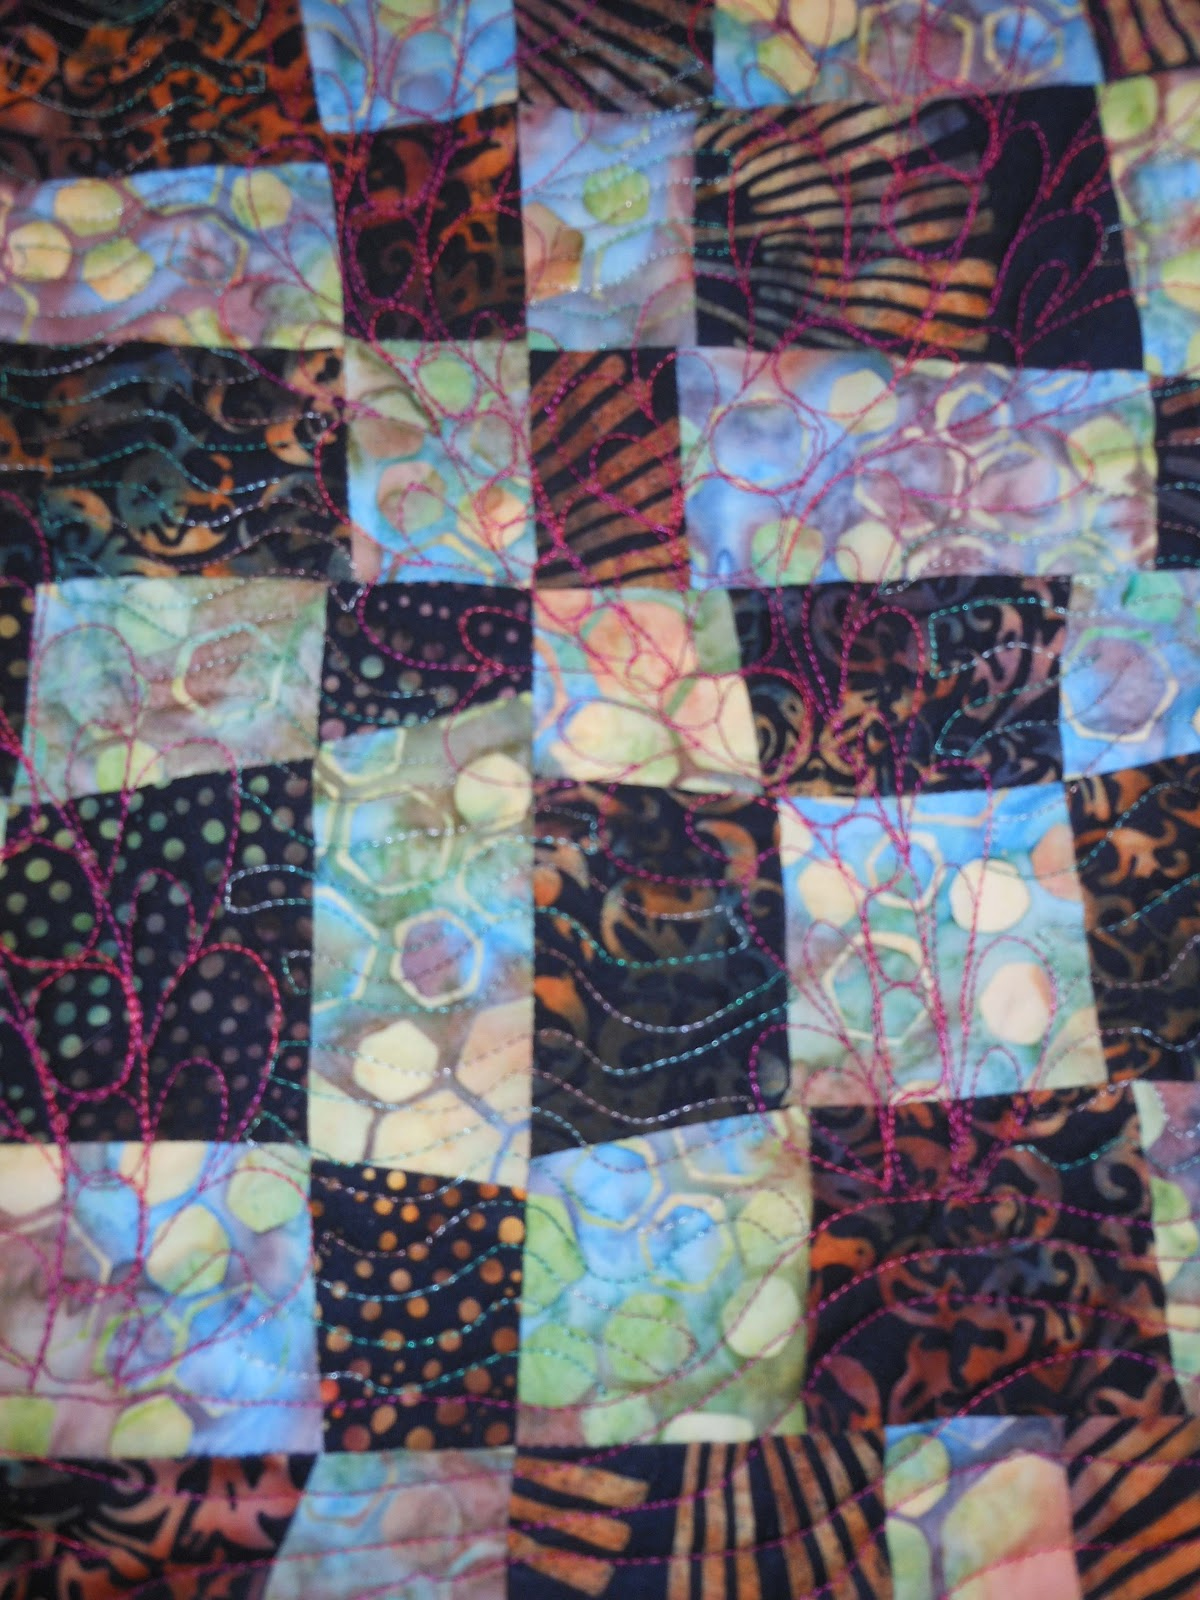 Sally troxell art quilts quilts for sale for Quilts for sale